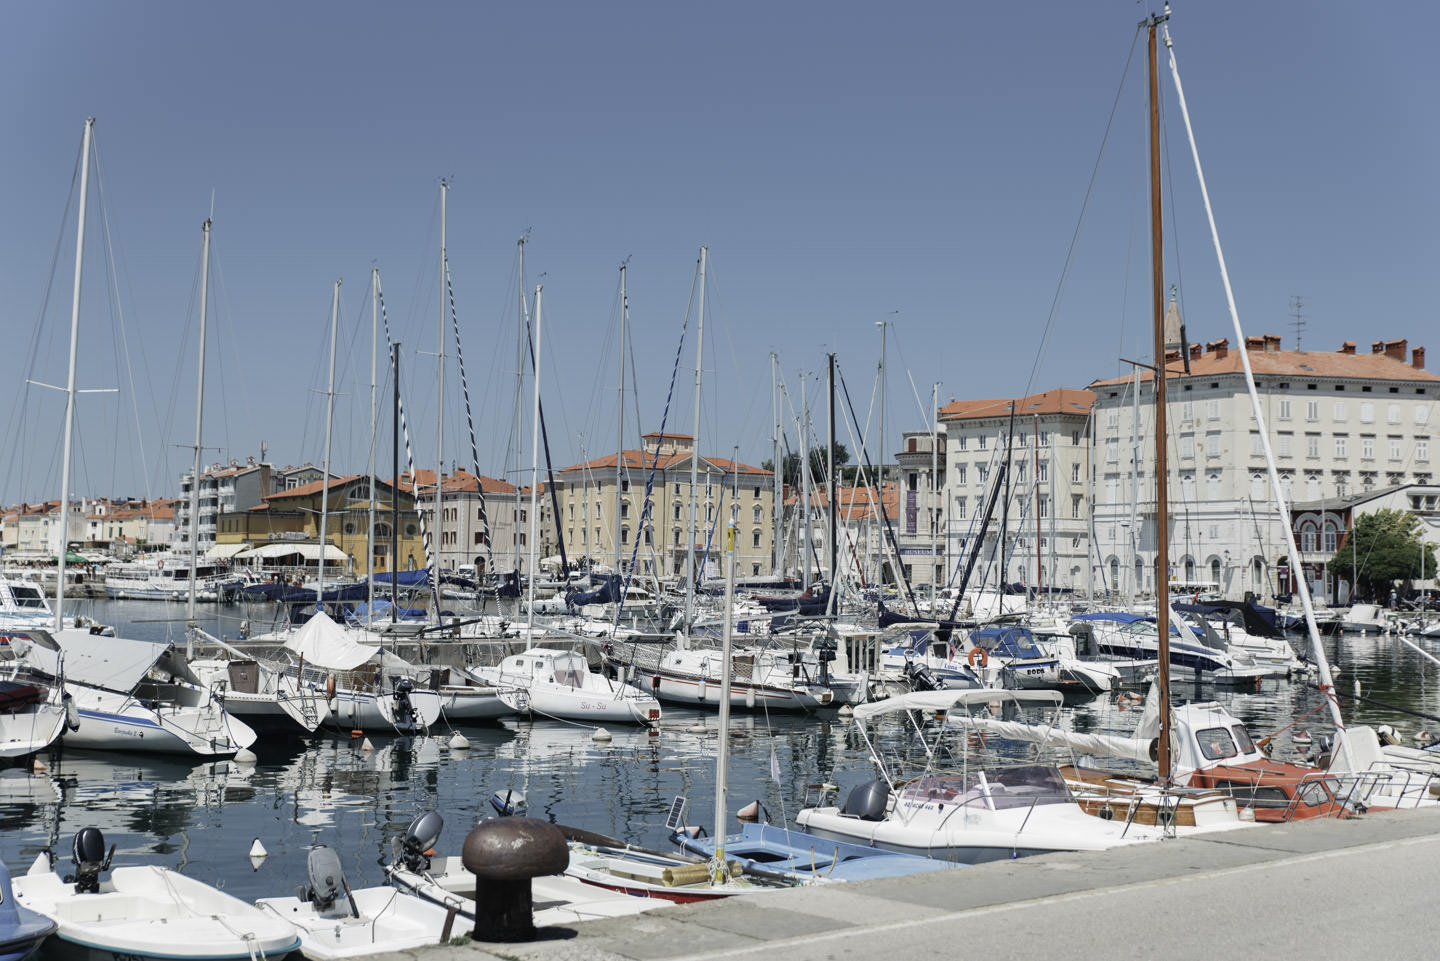 Blog-Mode-And-The-City-Lifestye-Voyage-a-Piran-Slovenie-9